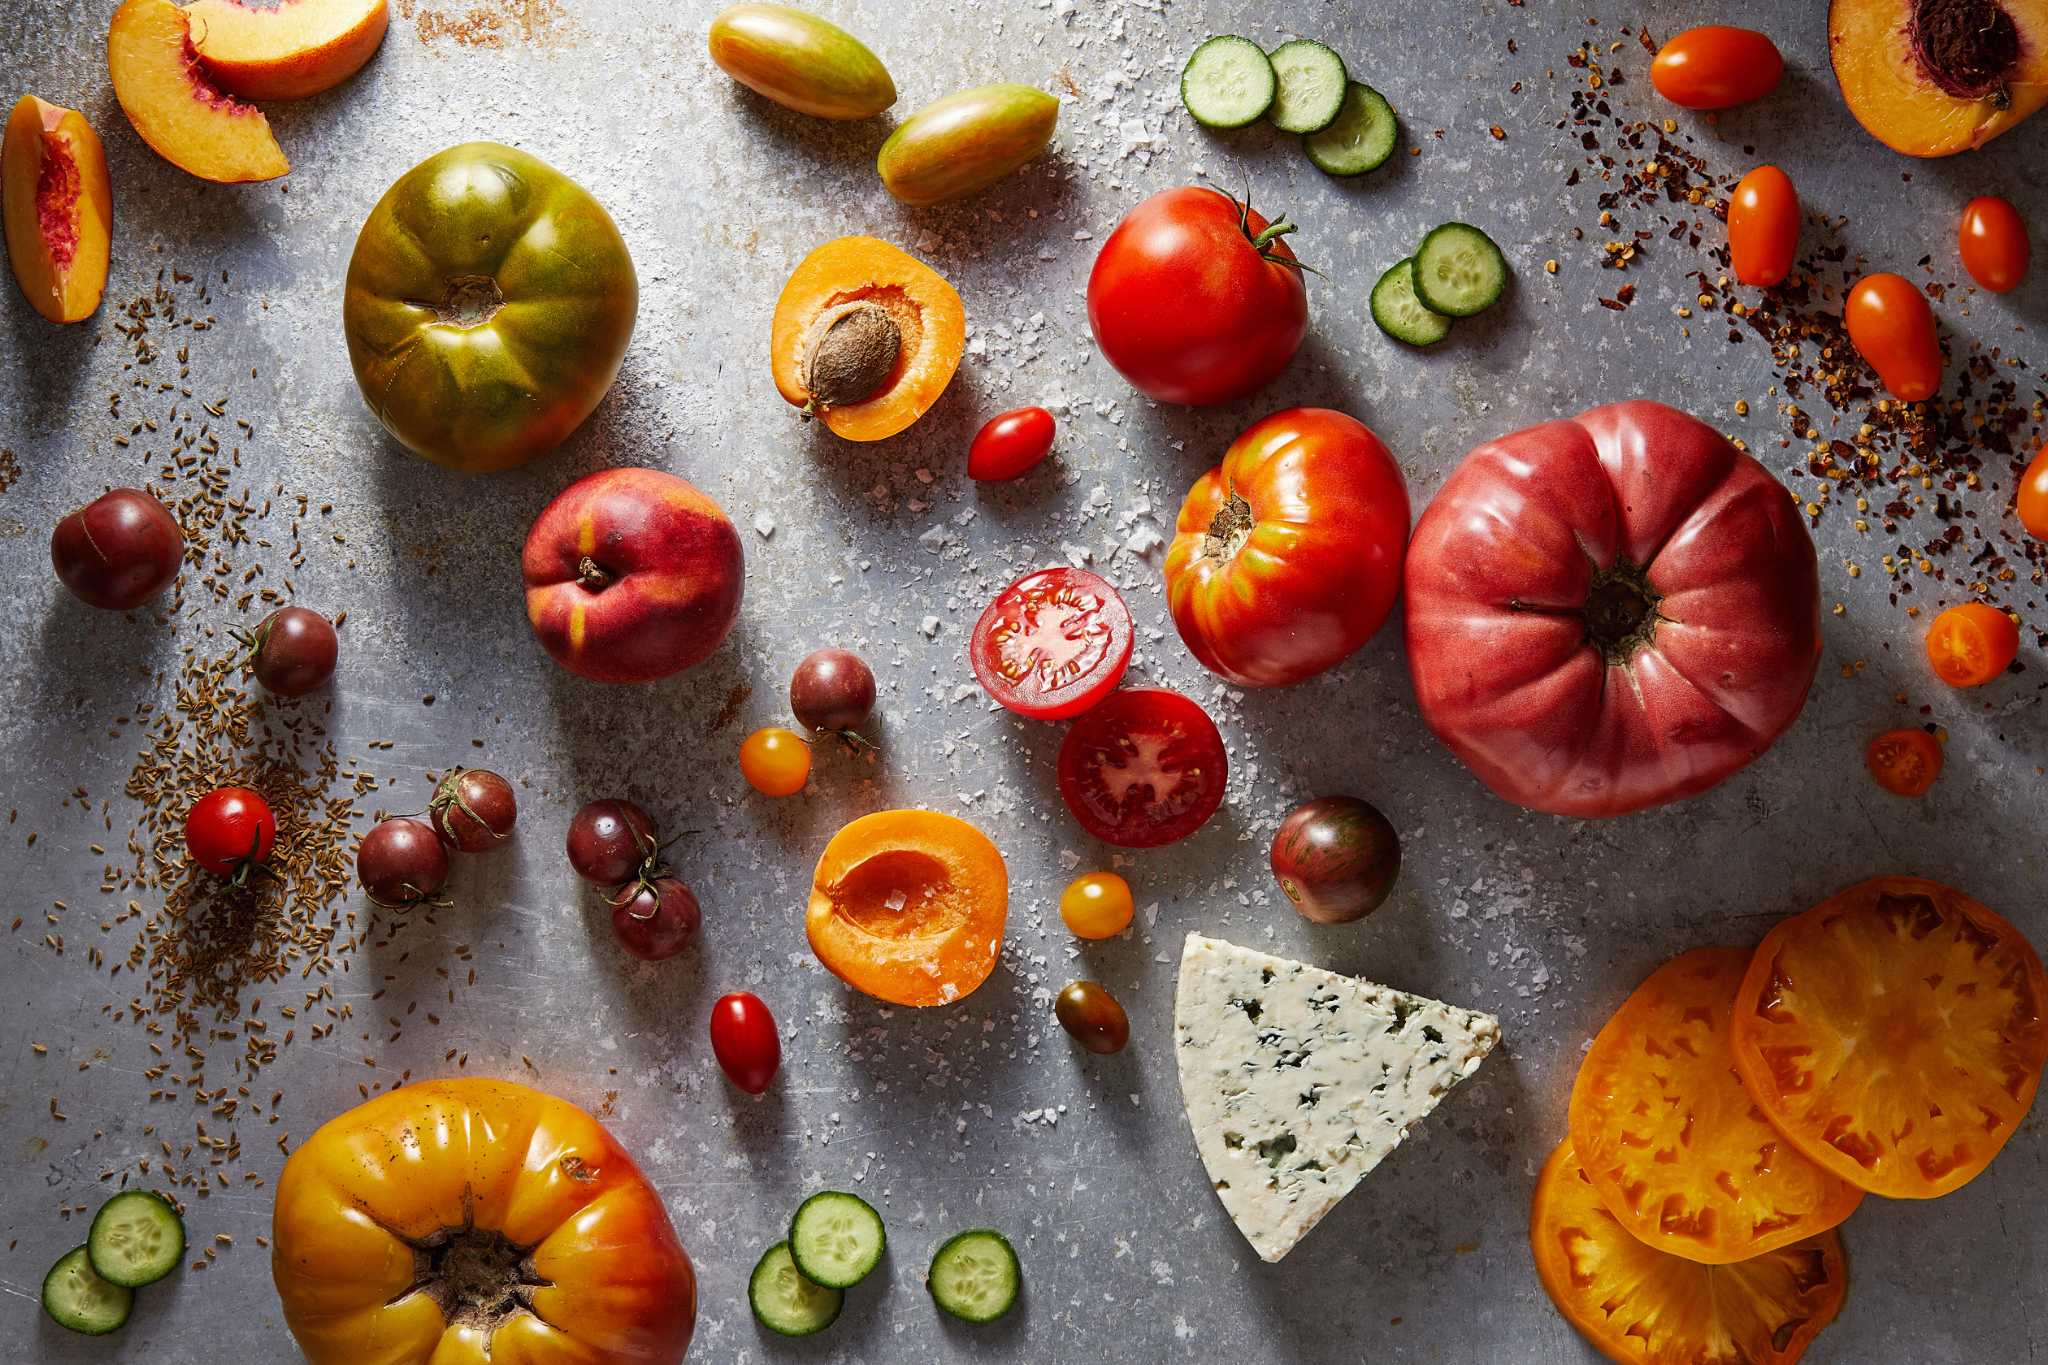 The best summer tomato salads use just a few ingredients to generate big flavors